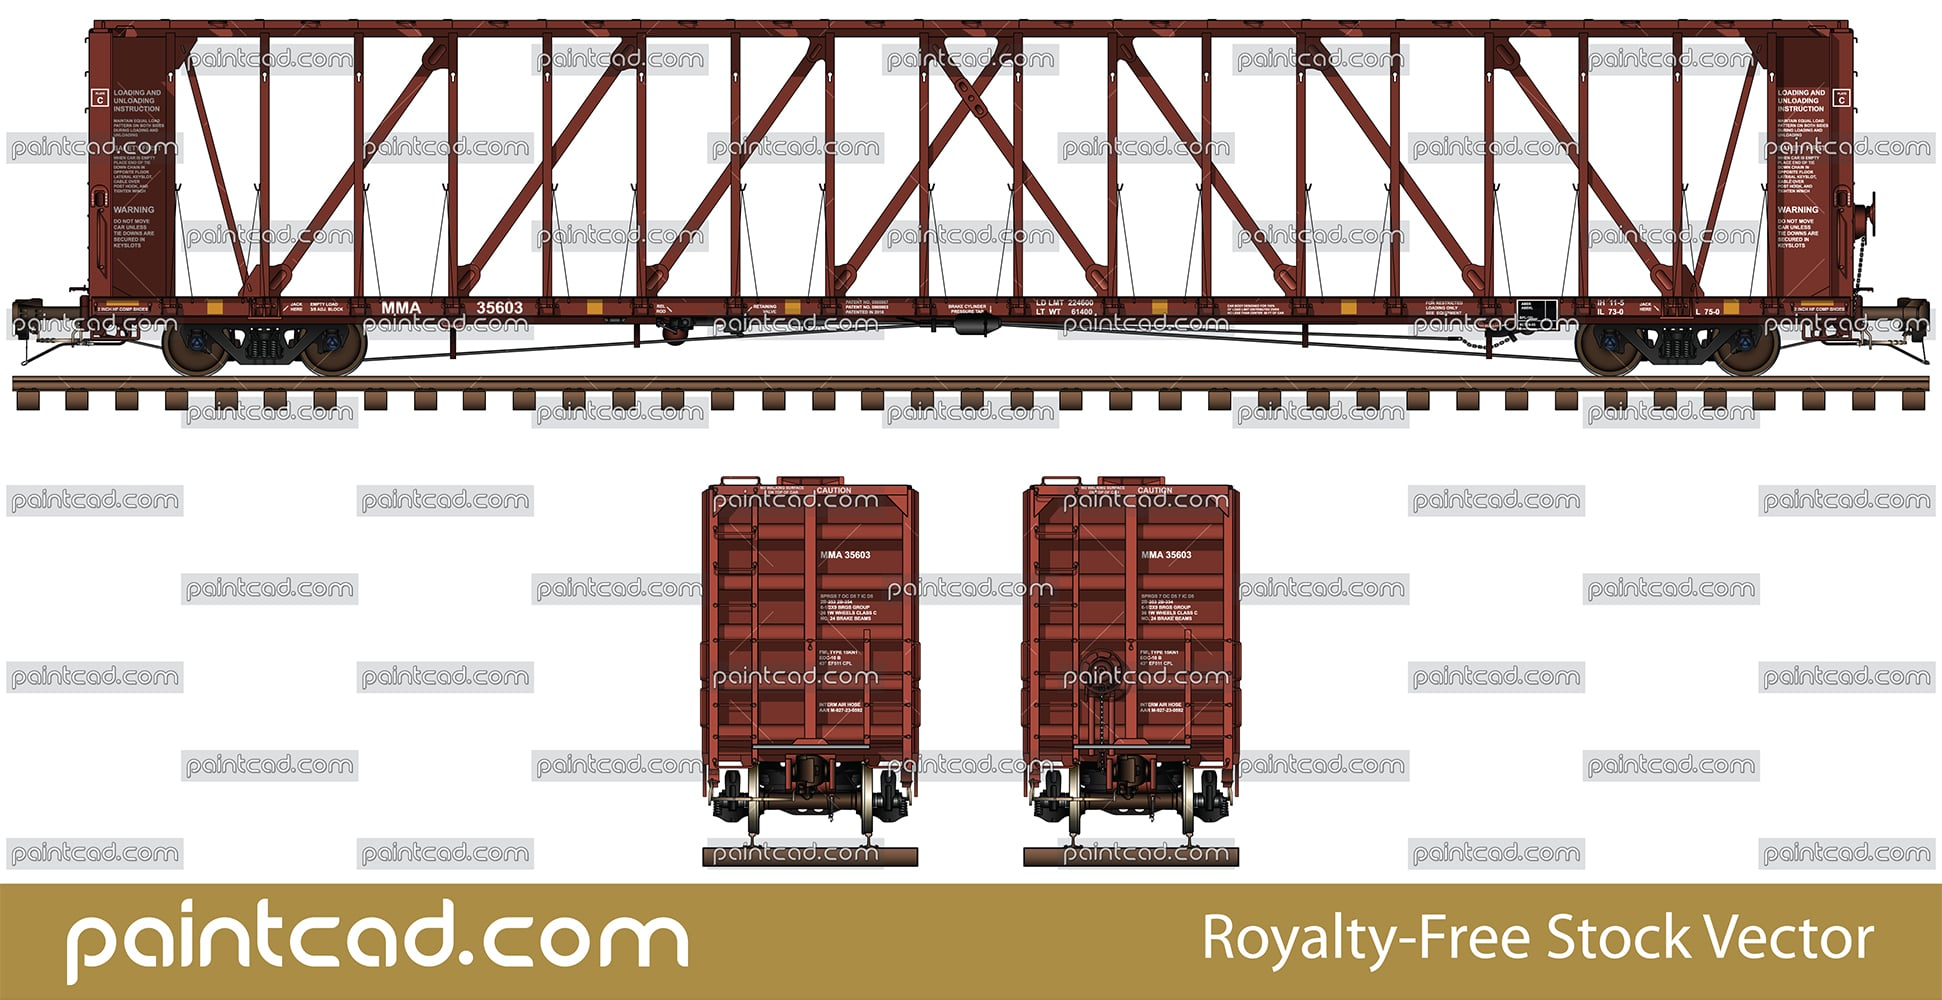 Centerbeam flatcar for transport of lumber and wallboards - vector illustration